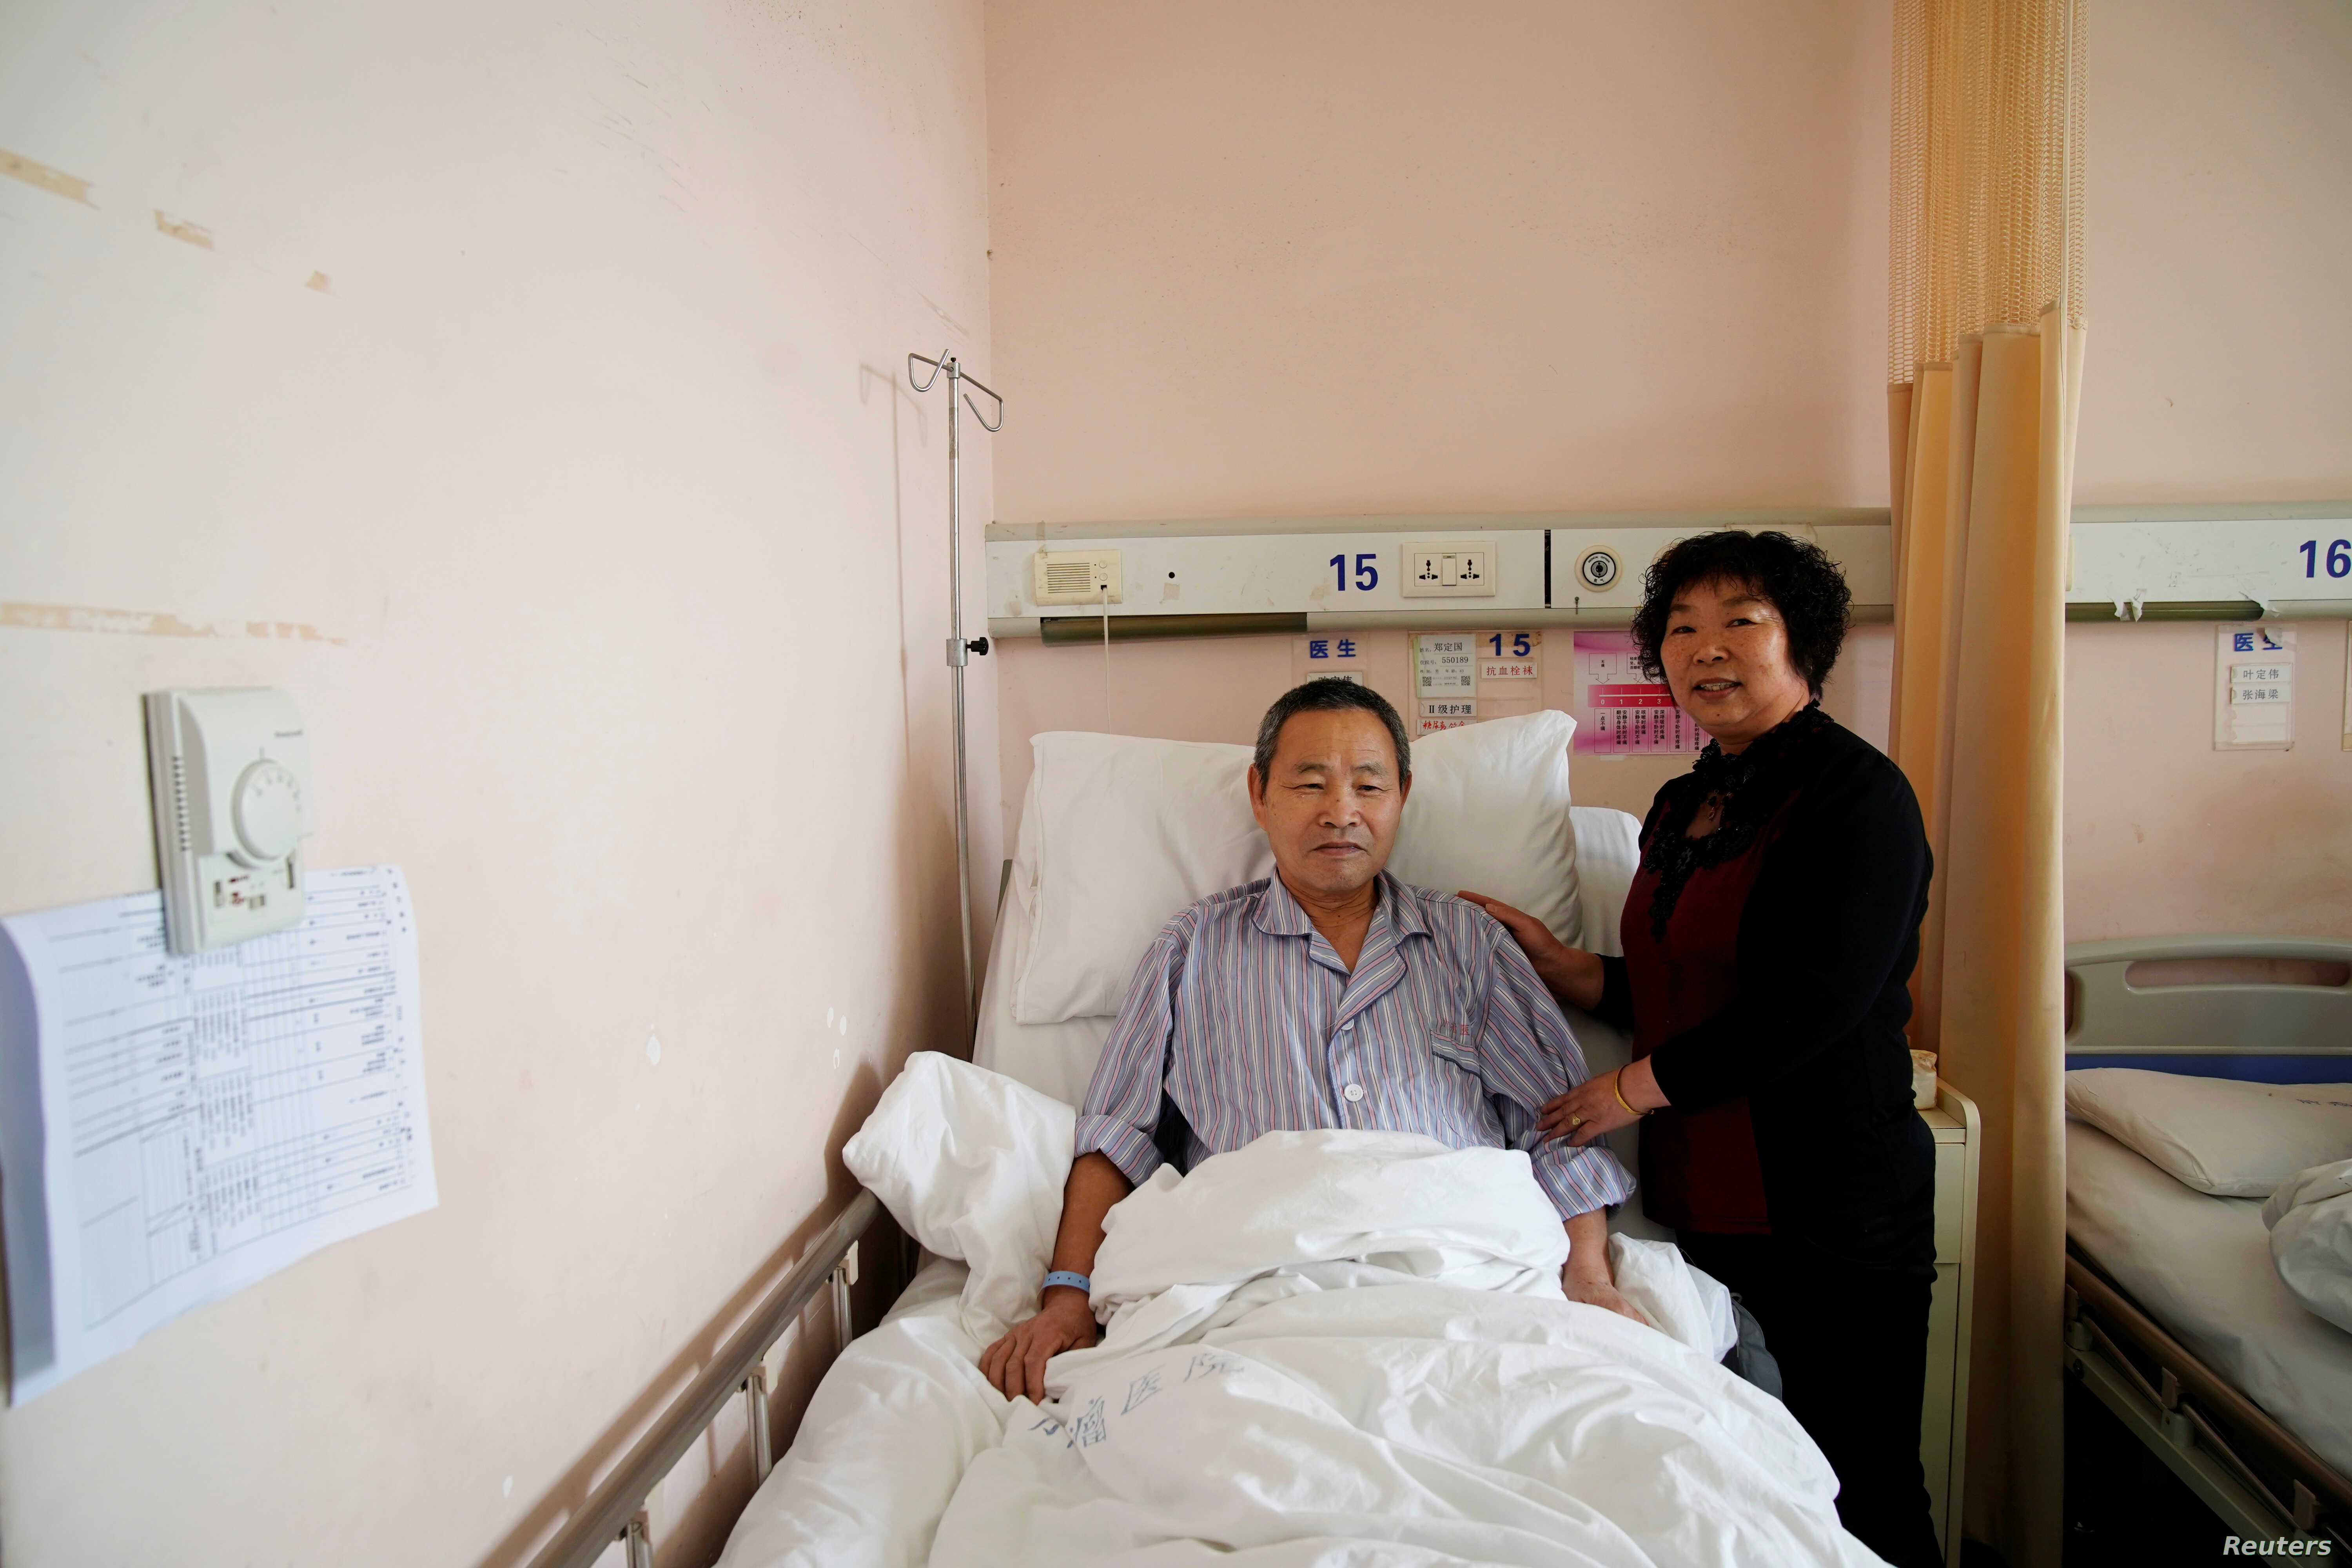 Huang Chenfeng, right, 63, and her husband, Zheng Dingguo, 63, pose for a picture at Fudan University Shanghai Cancer Center in Shanghai, China, Feb. 6, 2018.